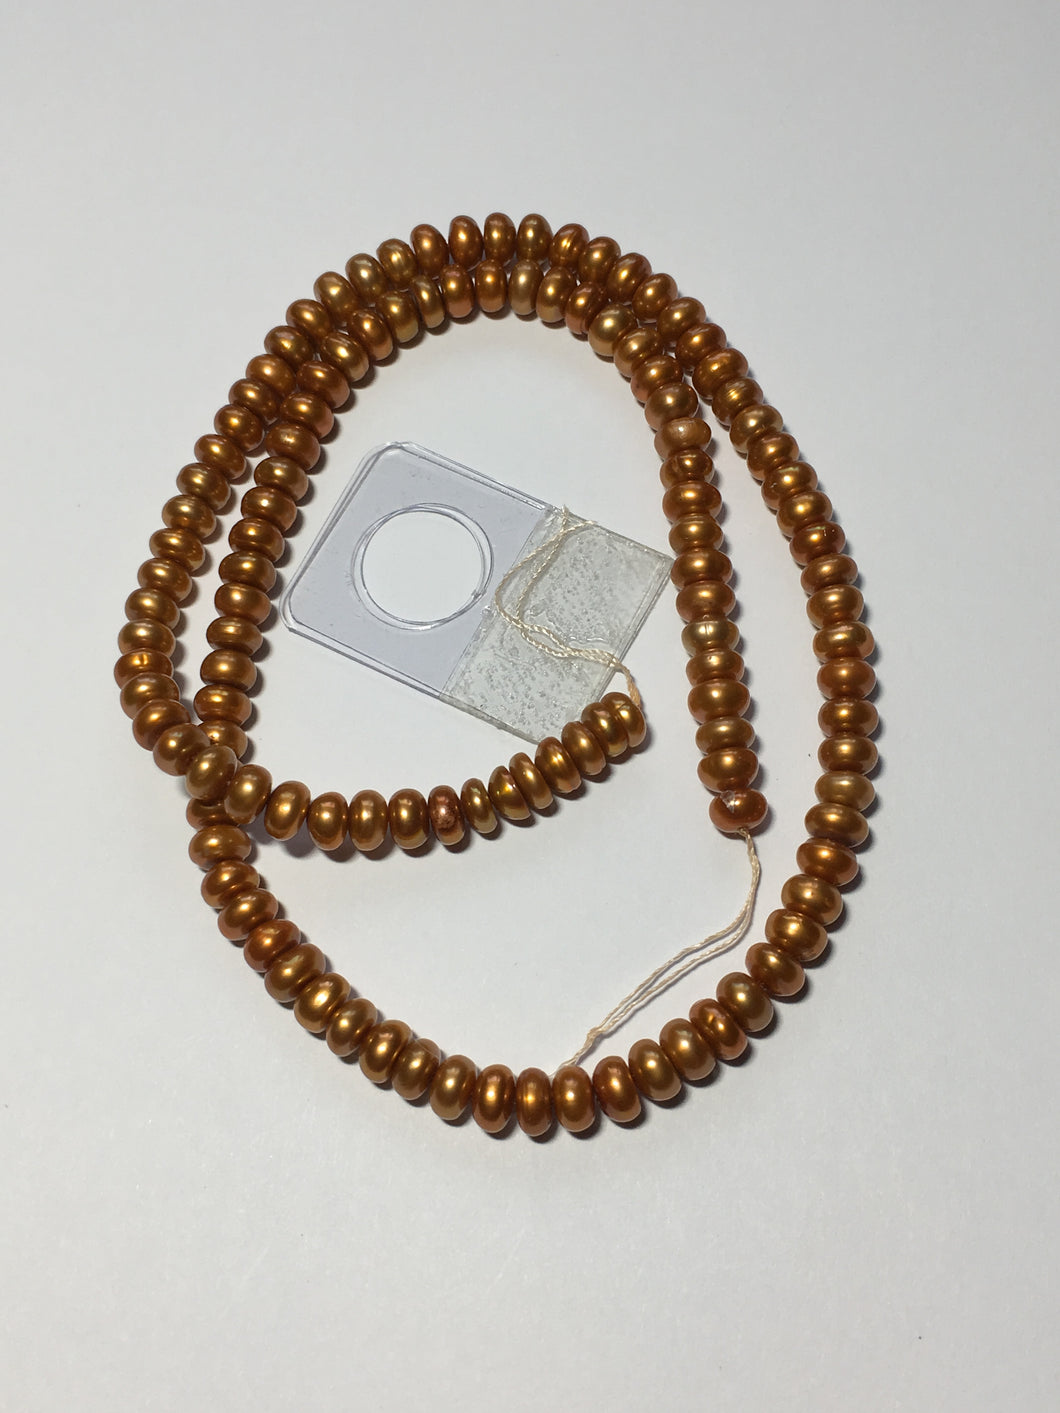 Gold Button Freshwater Pearls 6 mm, 16-Inch Strand 119 Pearls